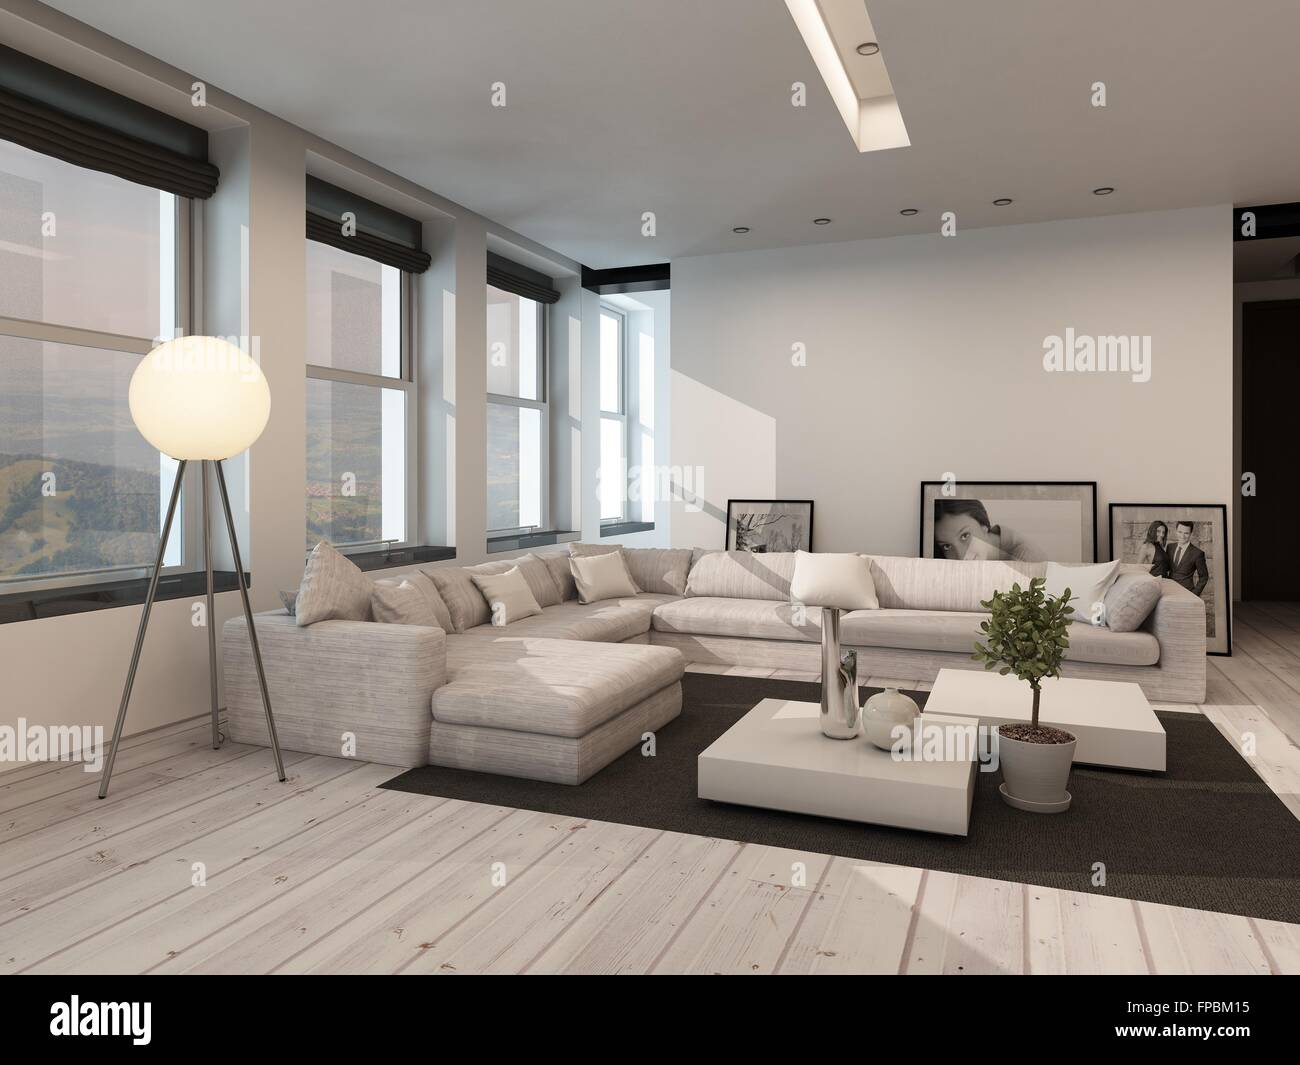 Modern Black And White Sitting Room Interior With Painted White Floorboards  With A Black Carpet, Part 91